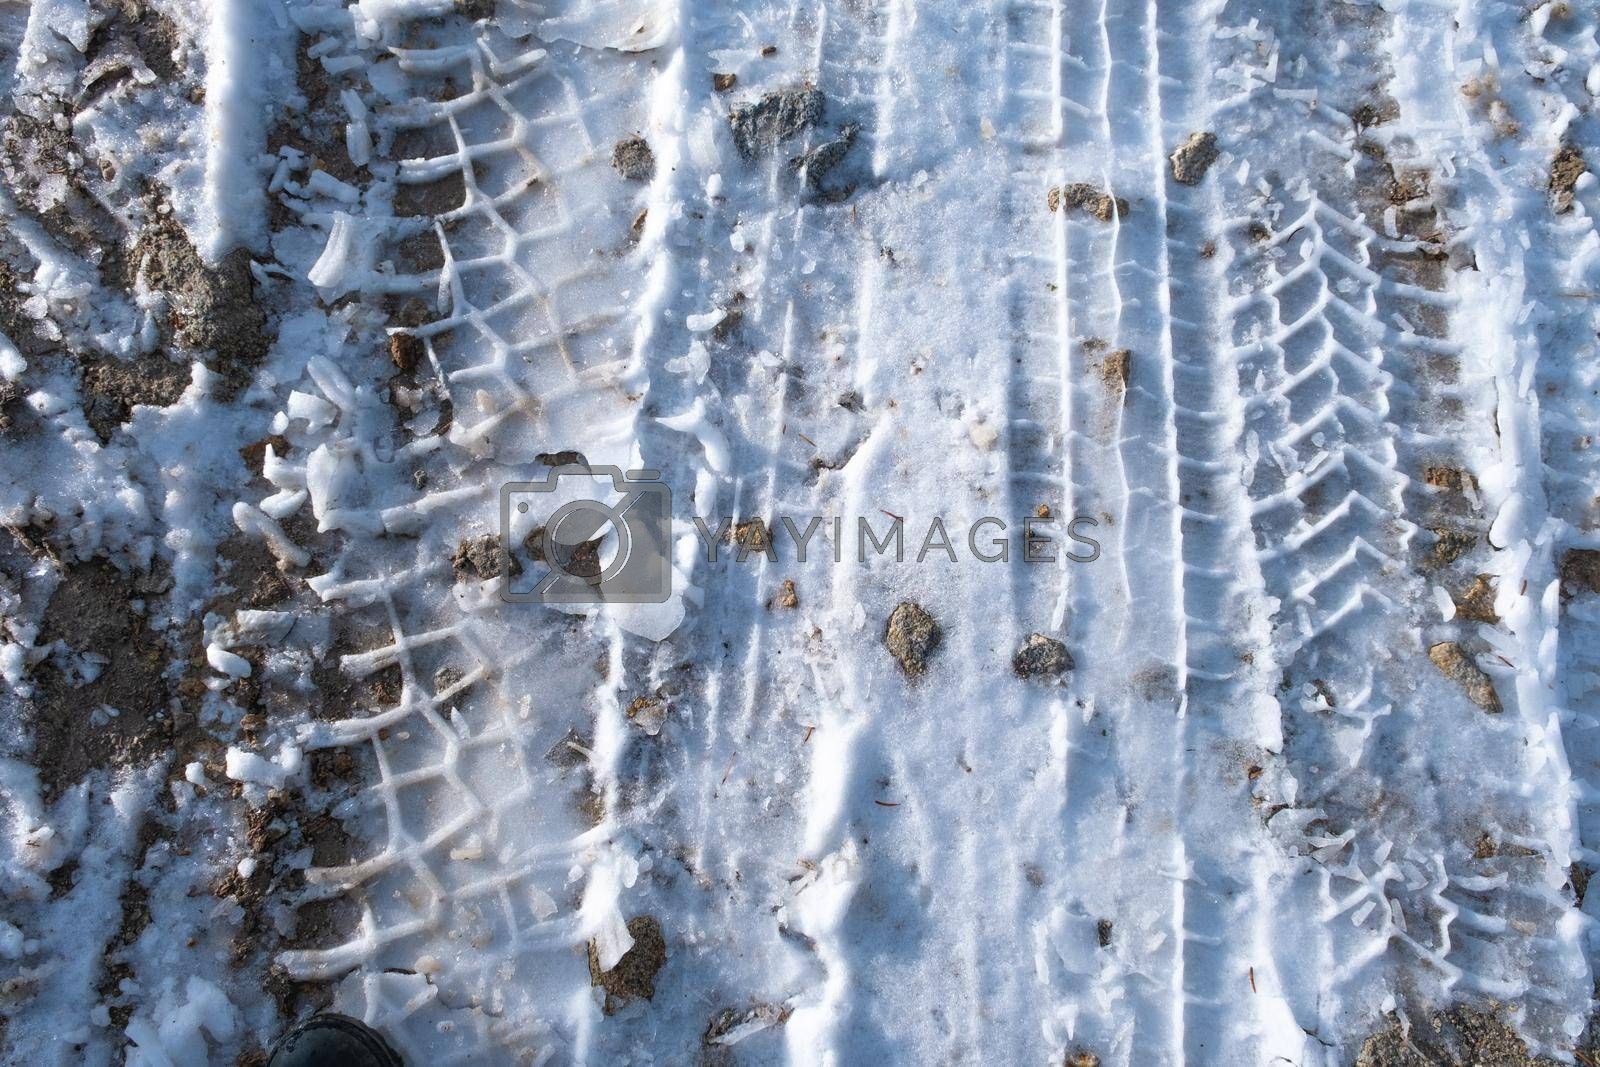 It depicts a texture of mud and some details on it